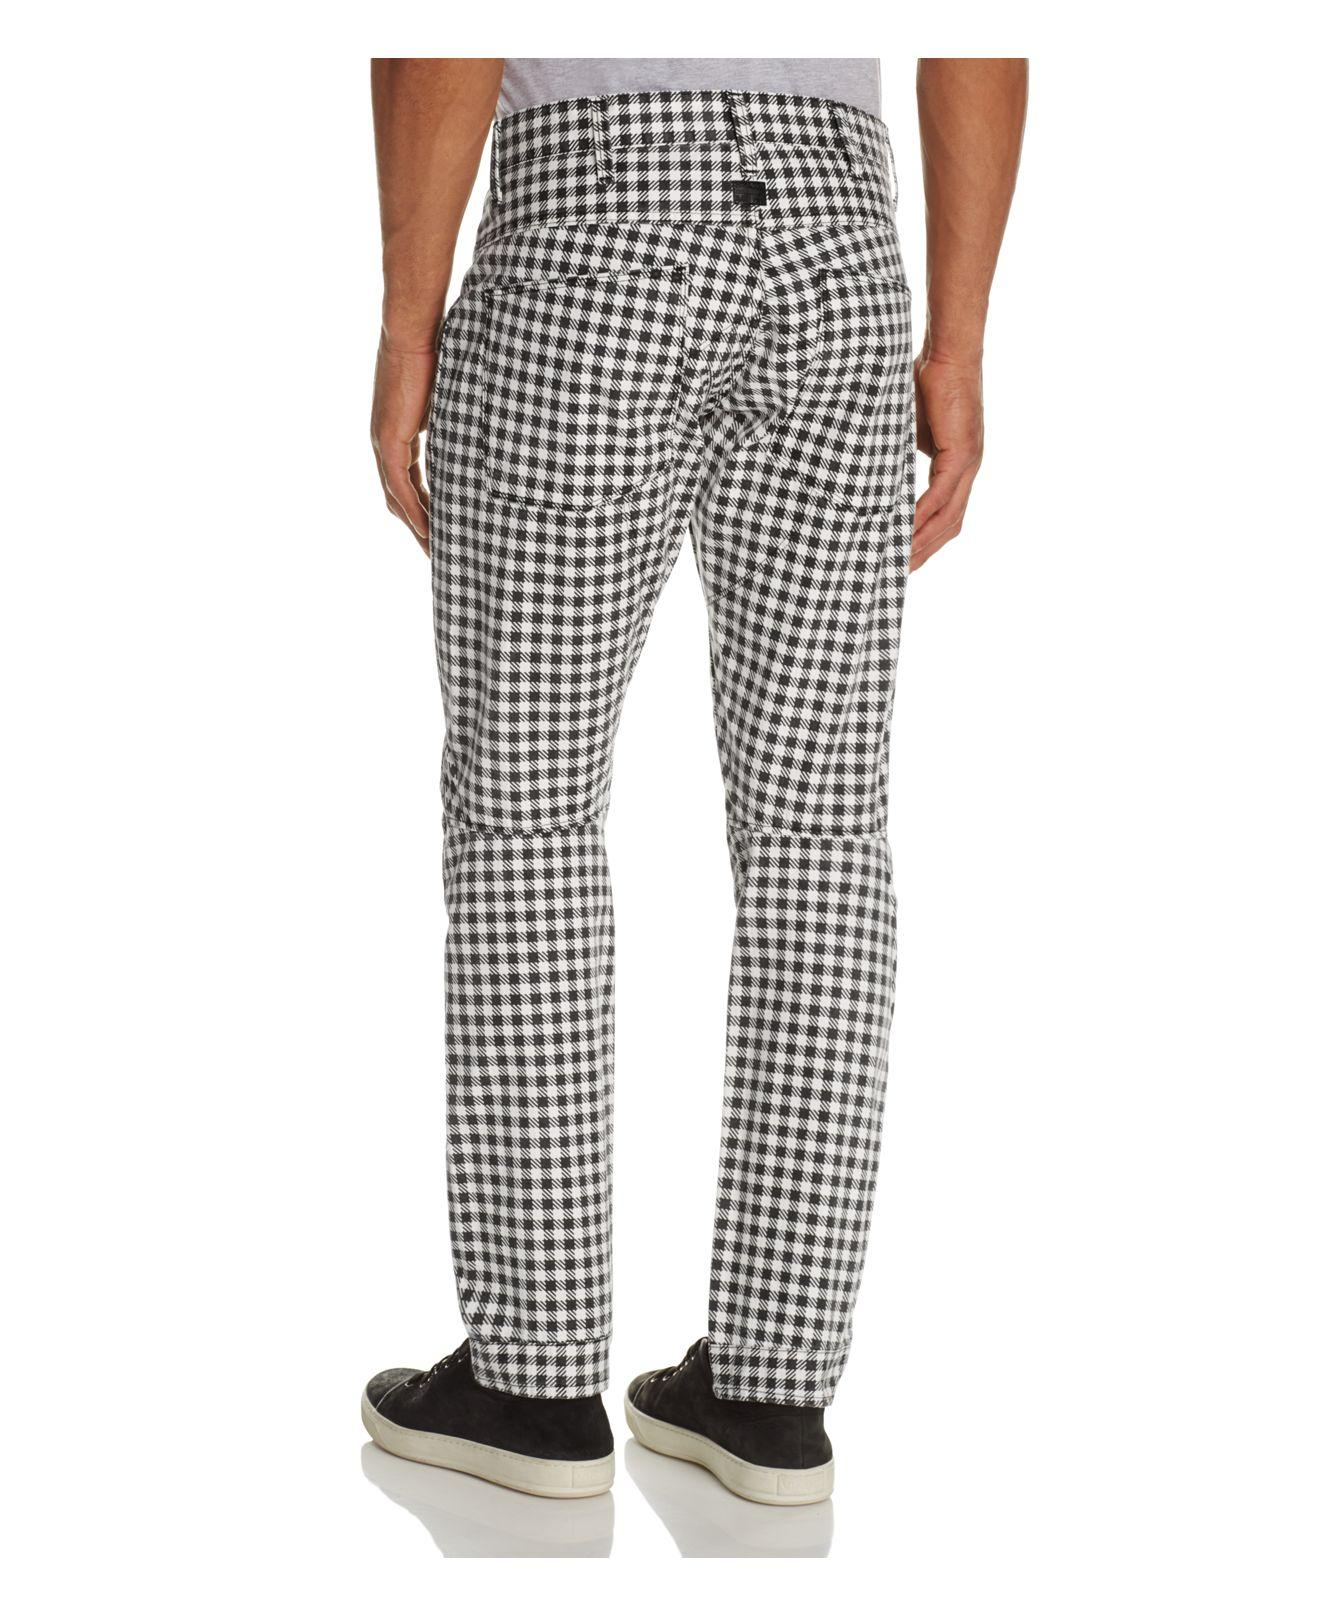 7cfb0cb96c7 G-Star RAW Elwood X25 Houndstooth Check New Tapered Fit Jeans By ...